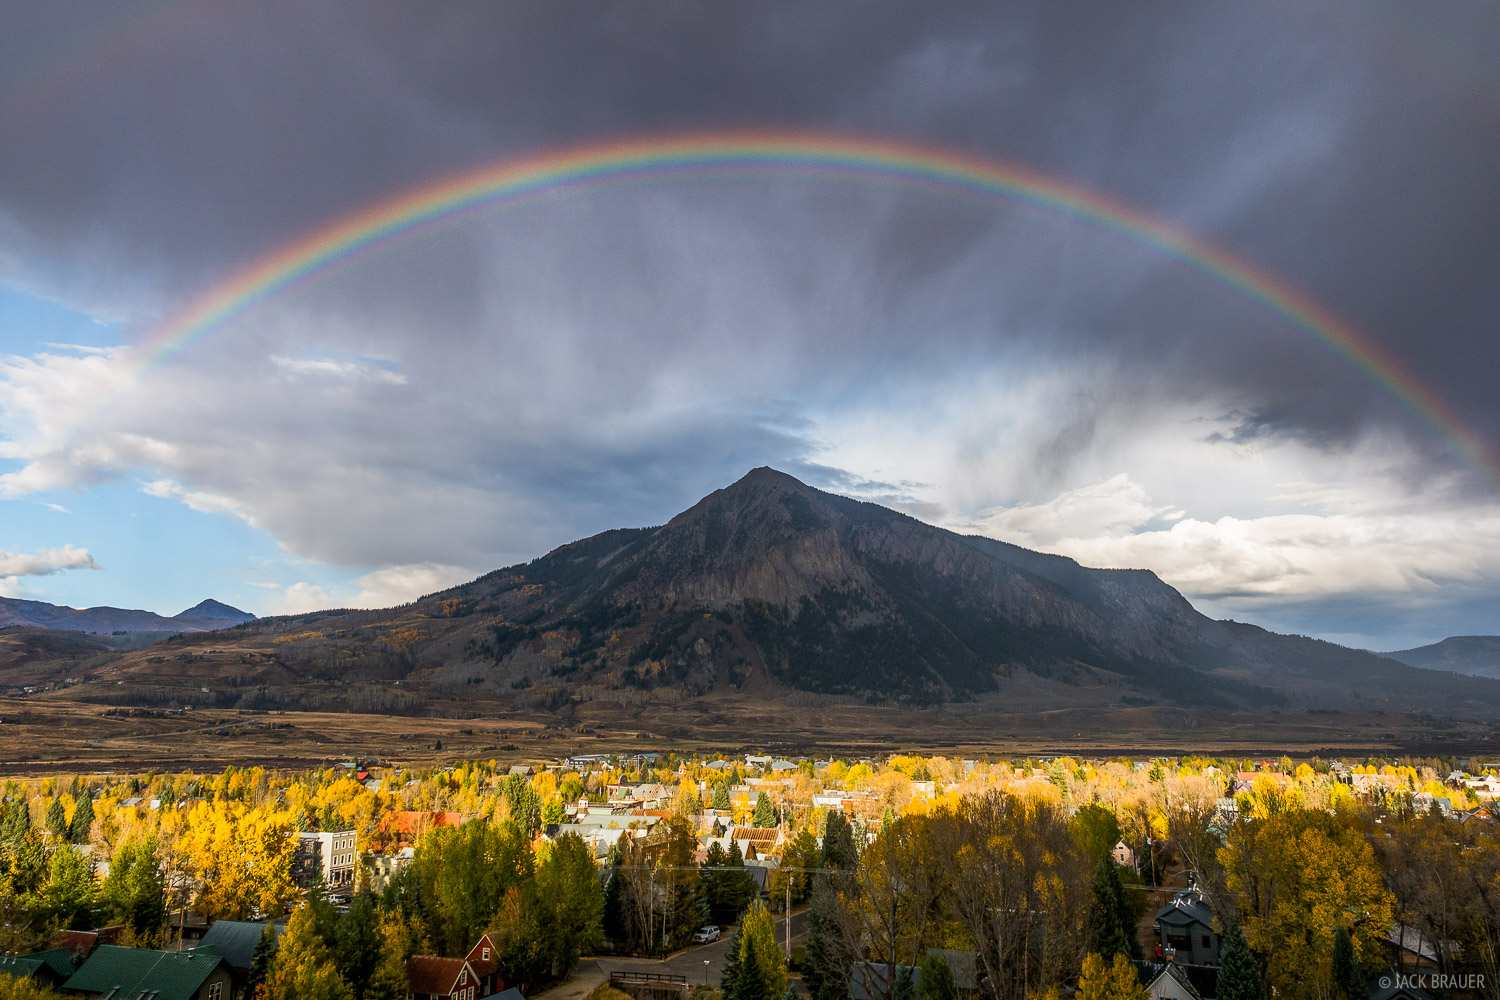 A rainbow shines over the town of Crested Butte, Colorado - October.